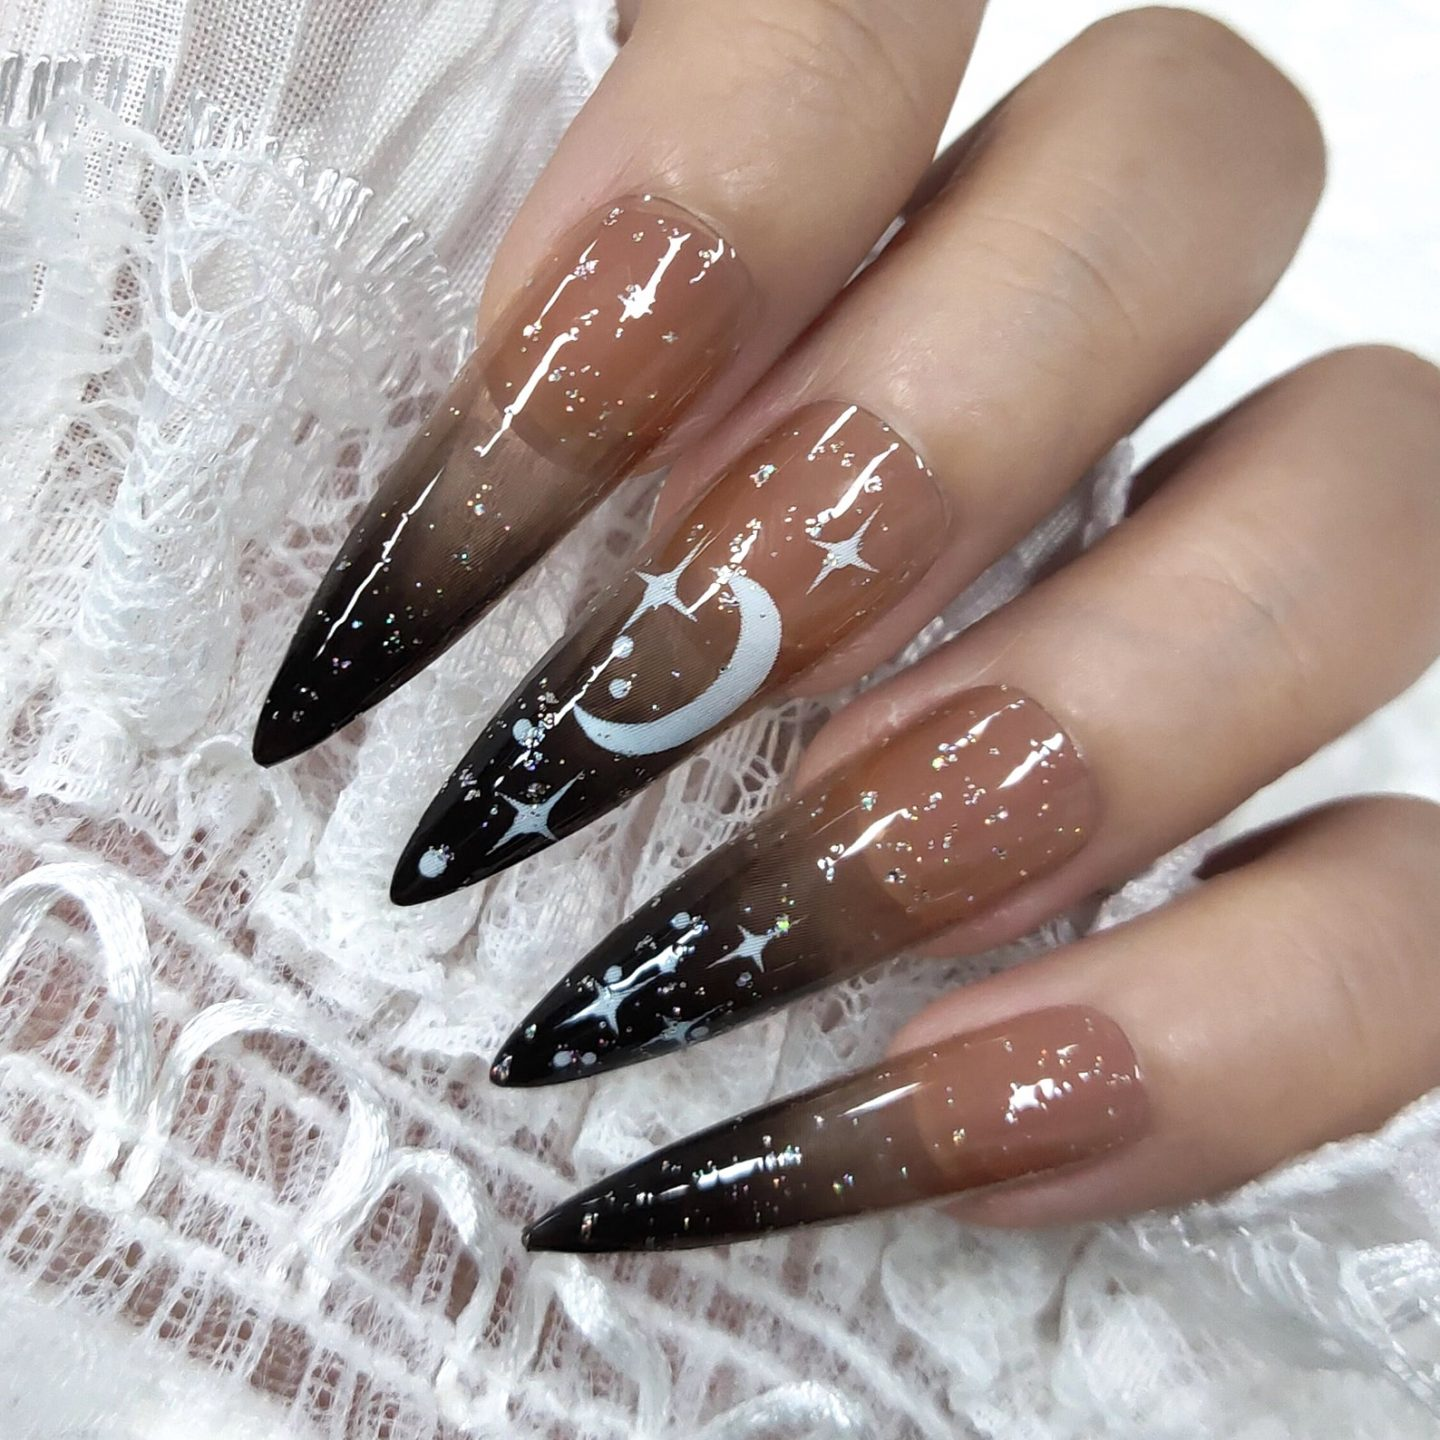 Long black ombre nails with celestial nail art